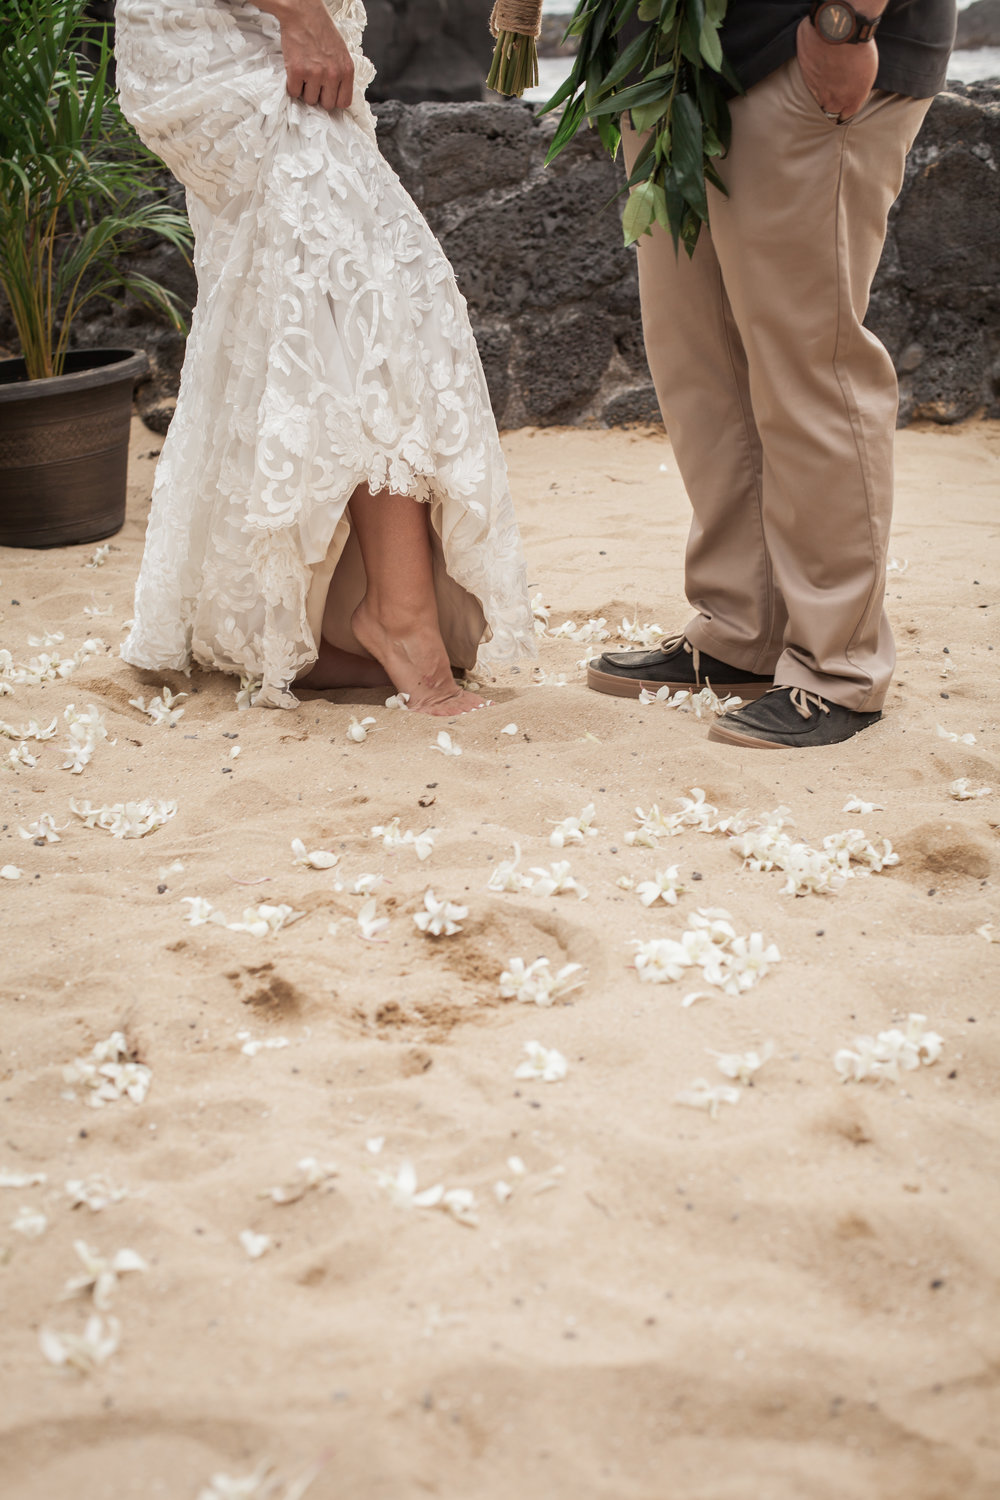 big island hawaii royal kona resort beach wedding © kelilina photography 20170520173821.jpg